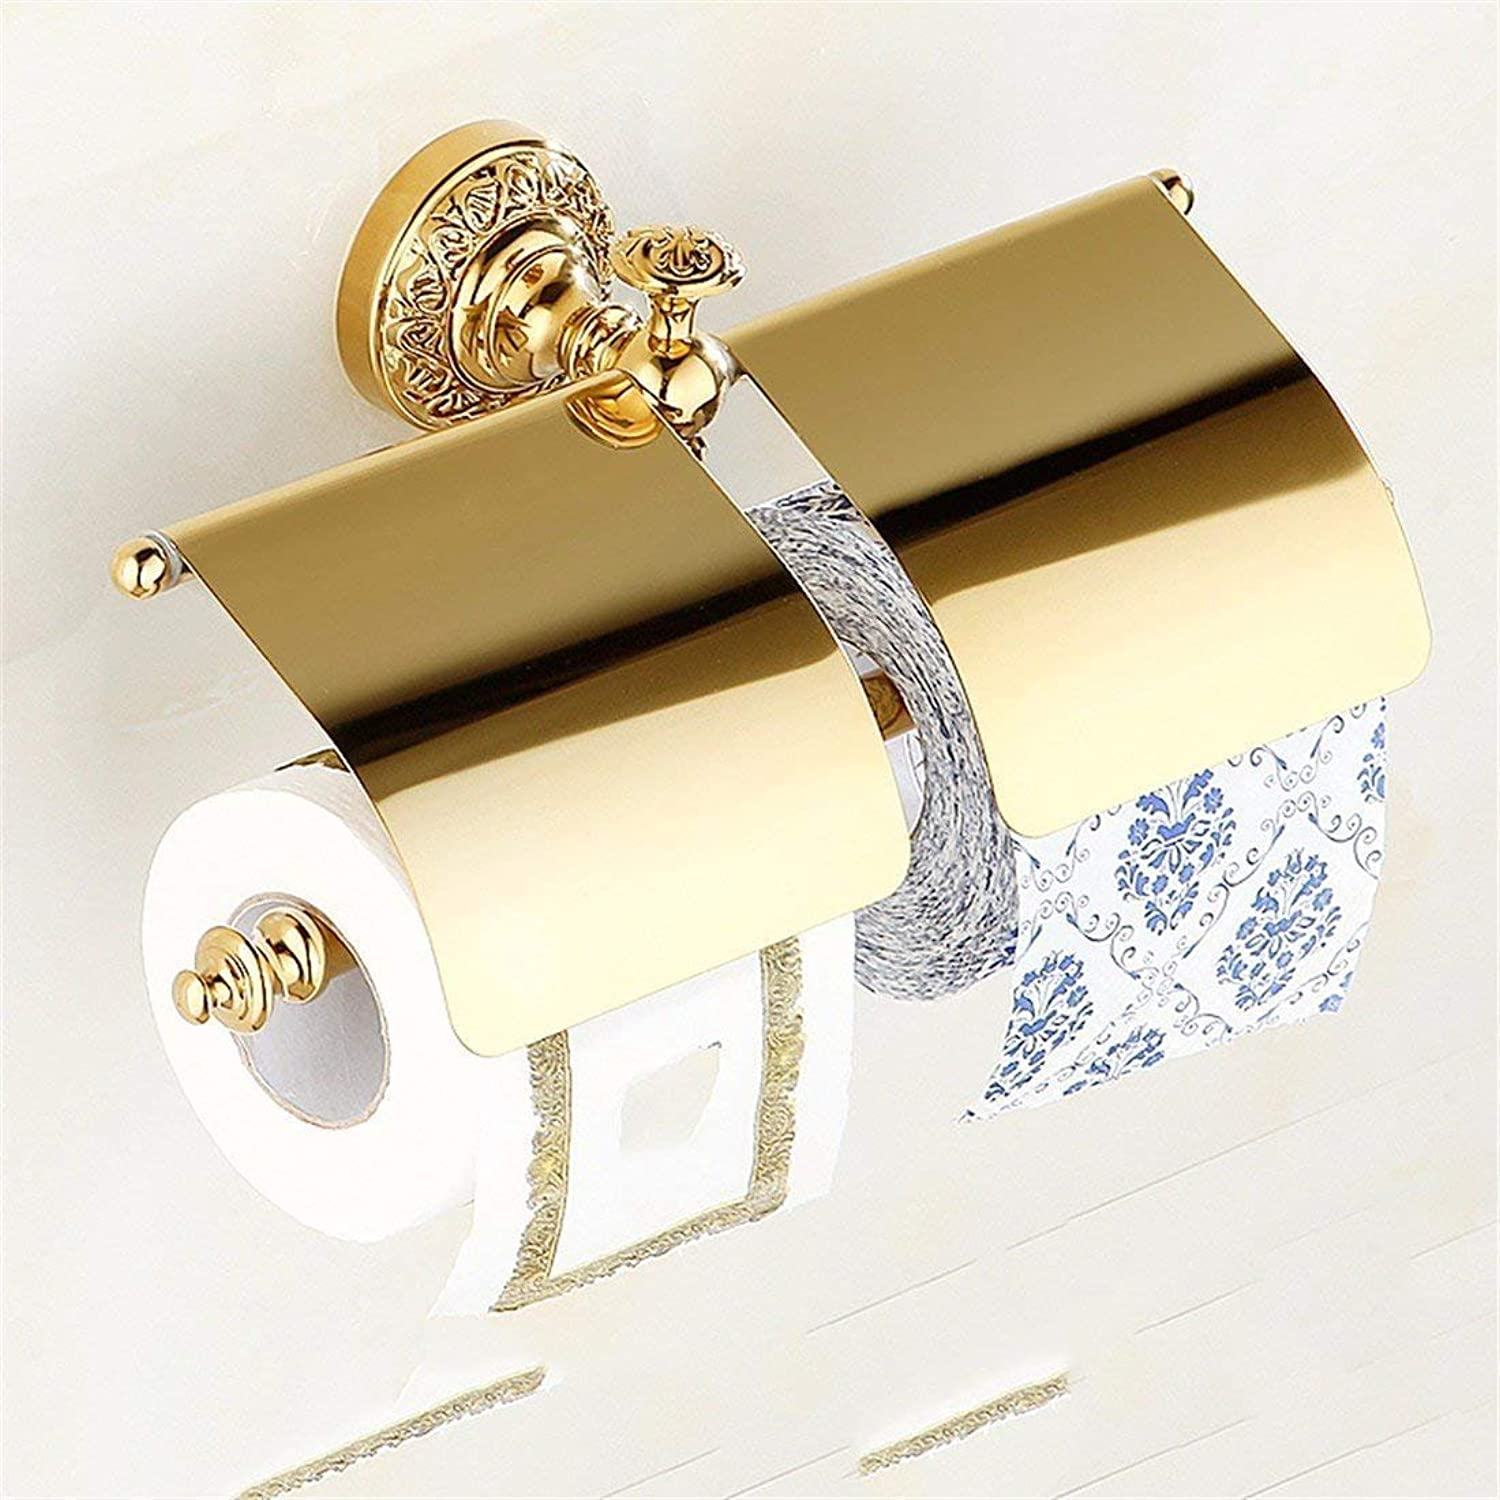 European Copper gold Carved Accessories of Bathroom Should be of a Toilet Brush Toilet Paper,Rack Kit Rack